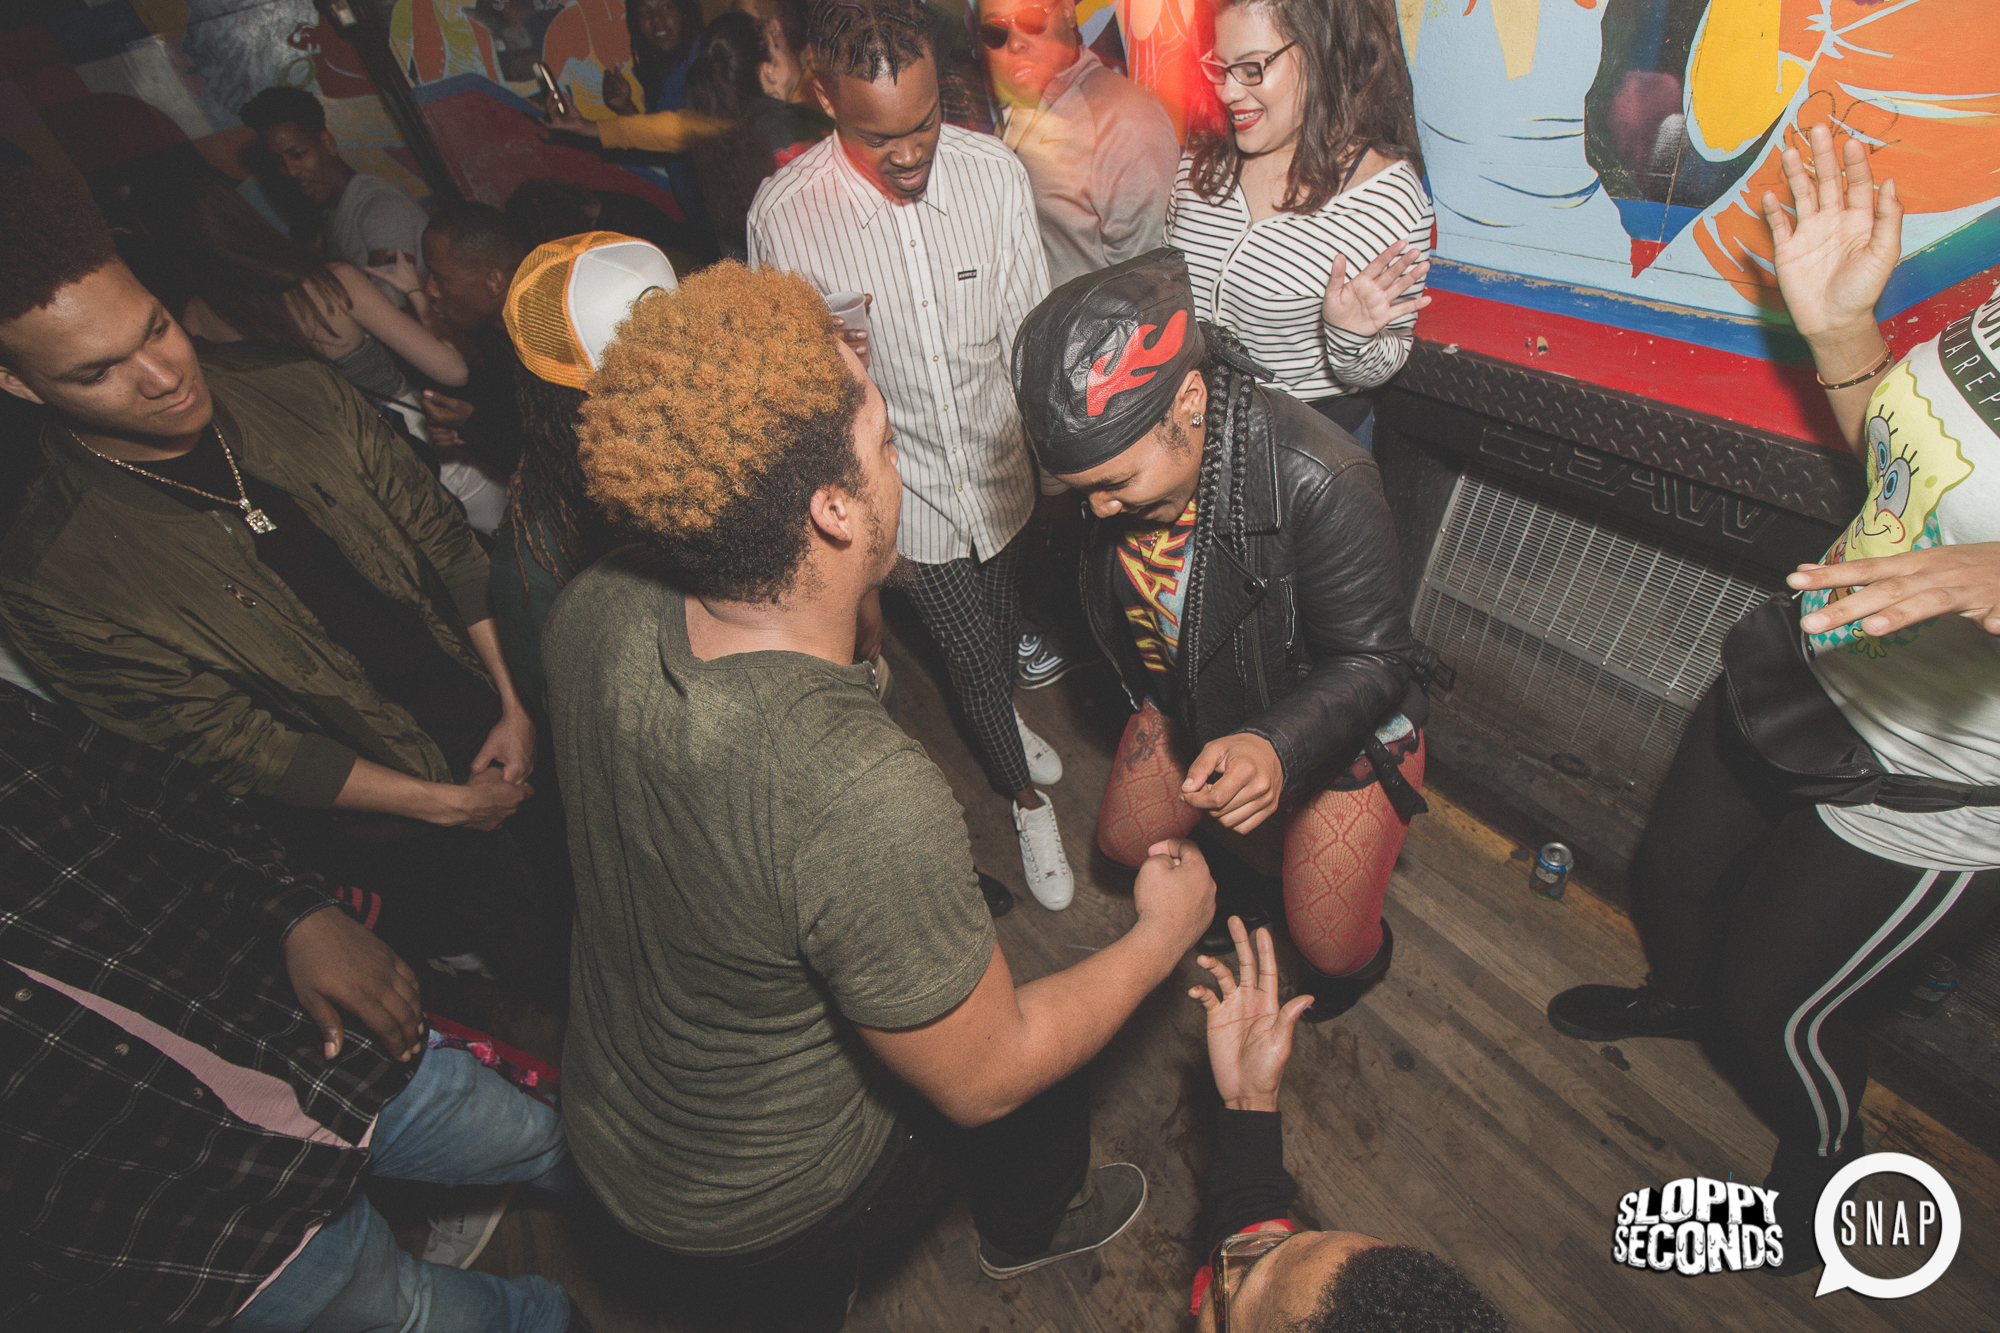 141Sloppy Seconds March2019 oh snap kid atlanta.JPG